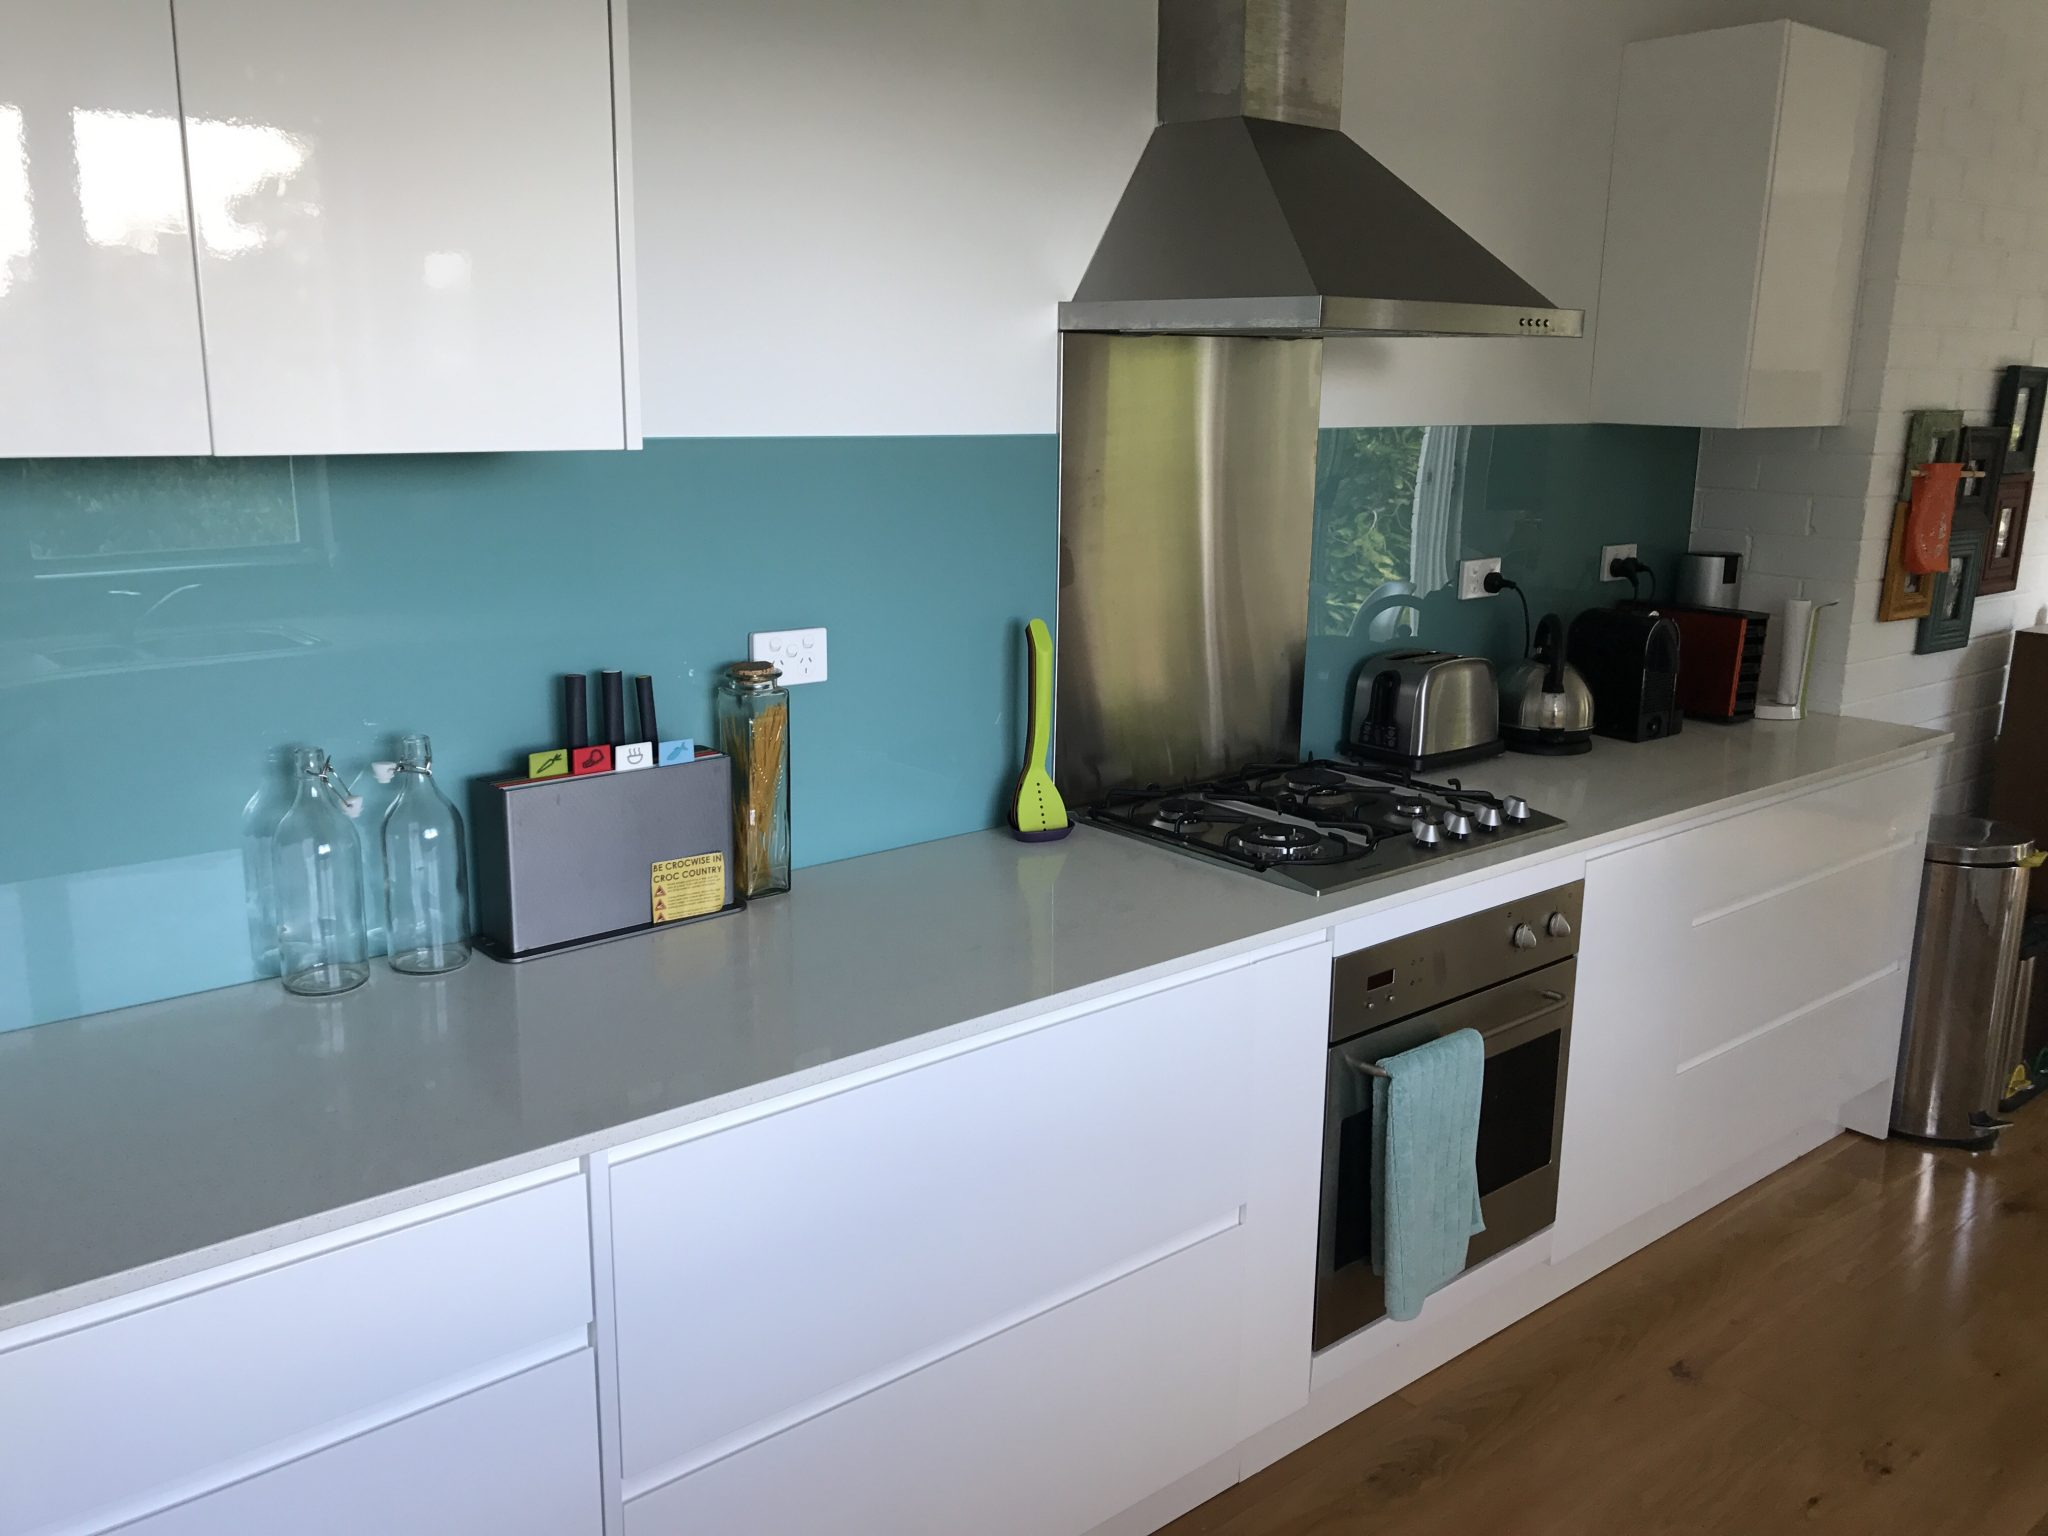 Acrylic Splashback with insert behind the cooktop